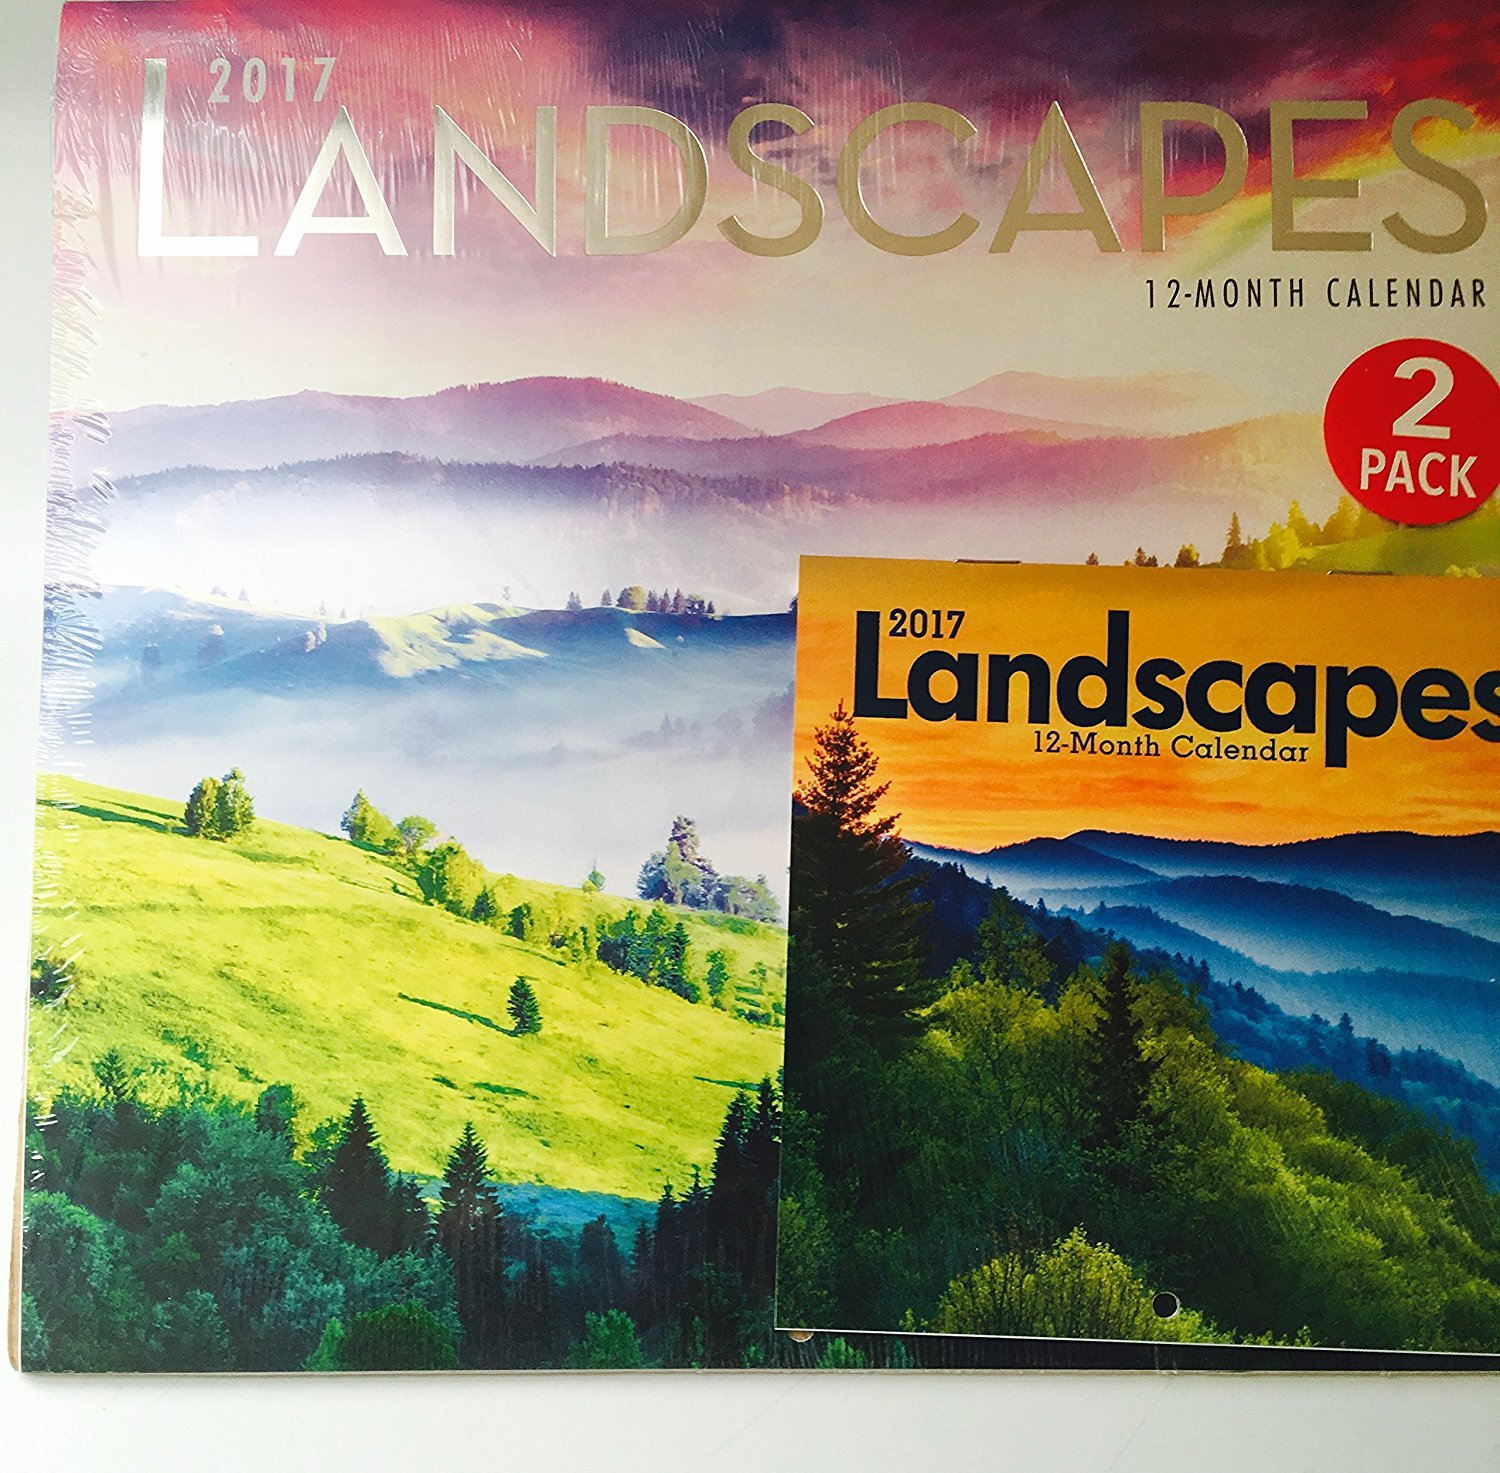 Landscapes 12-Month 2017 Calendar with Mini Calendar